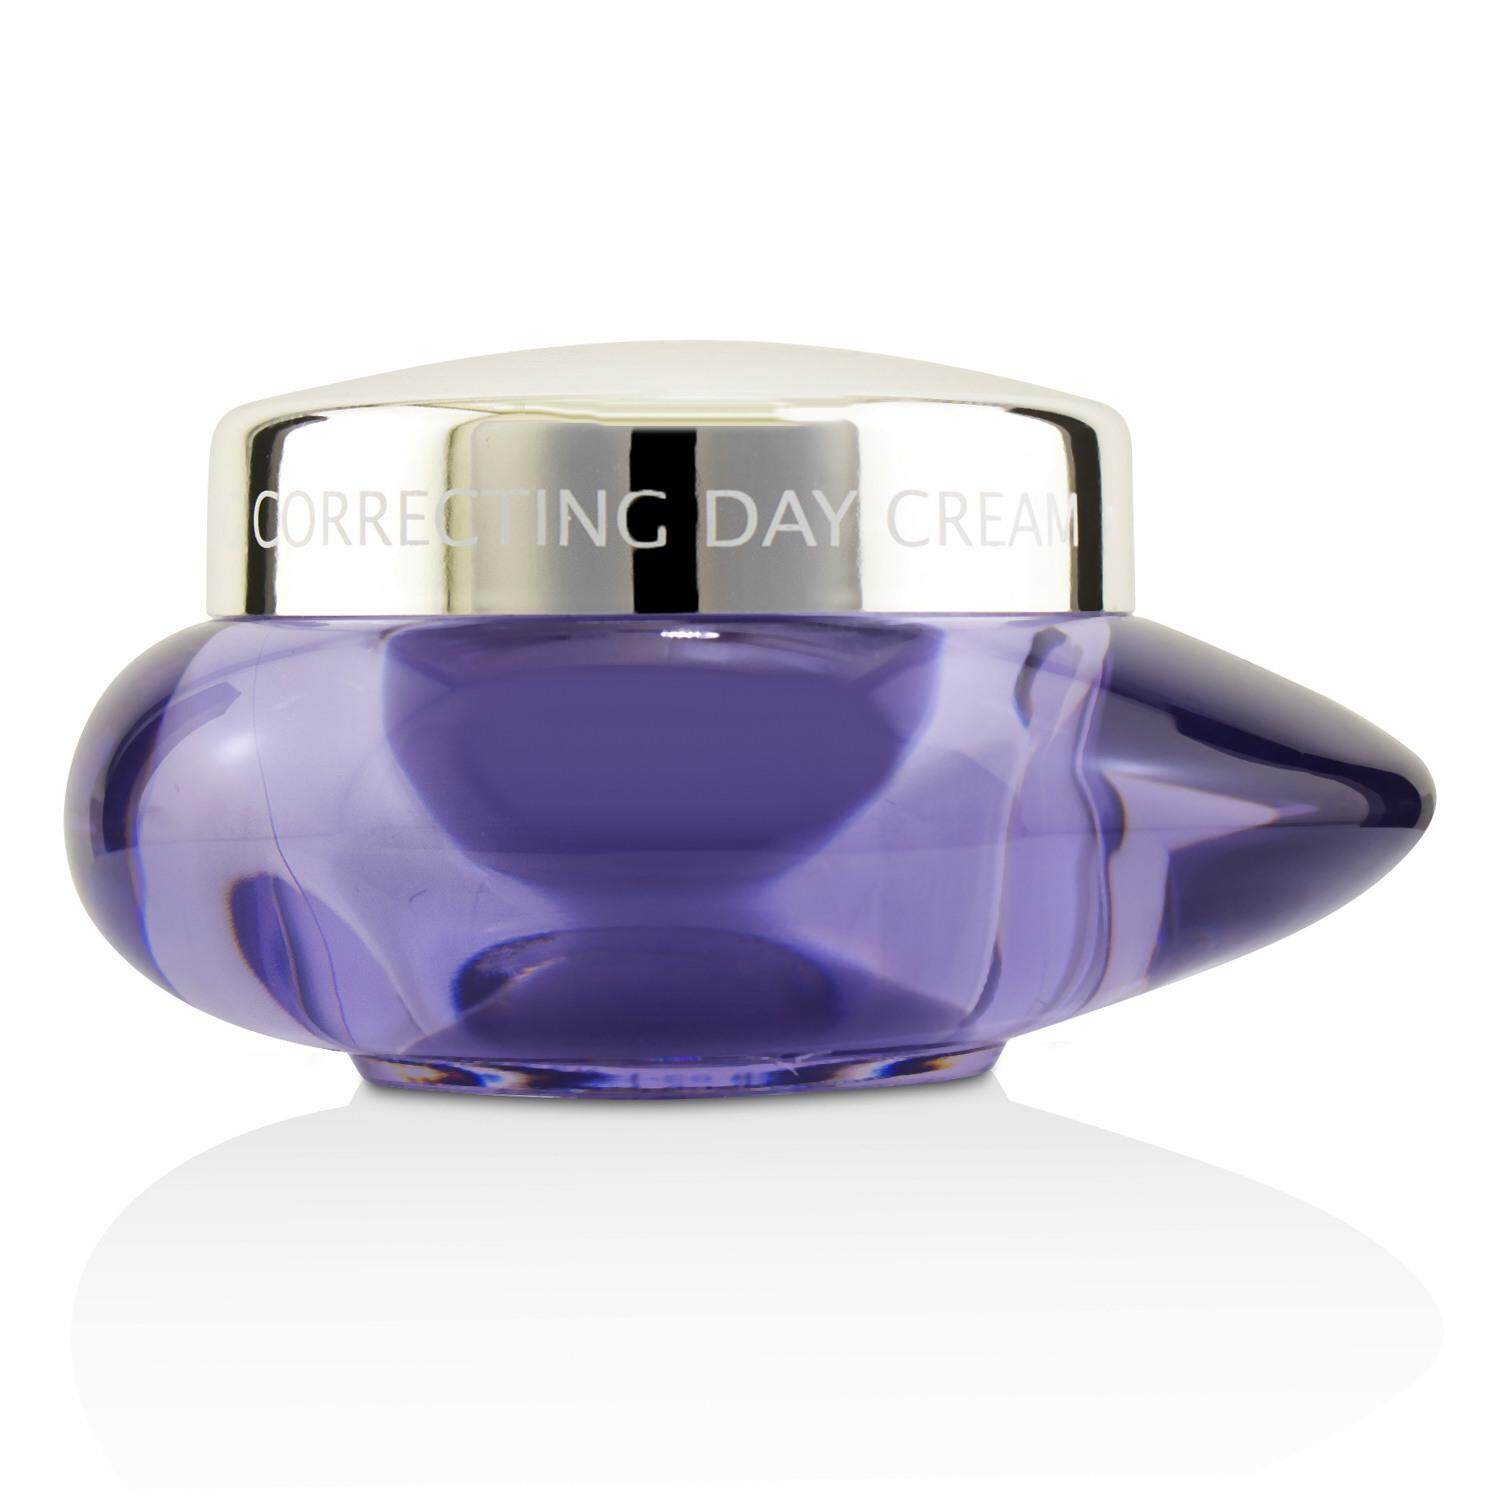 Fitur Thalgo Silicium Marin Lifting Correcting Day Cream Normal To Clarins Hydraquench Gel Combination Skin 15ml Detail Gambar Terbaru